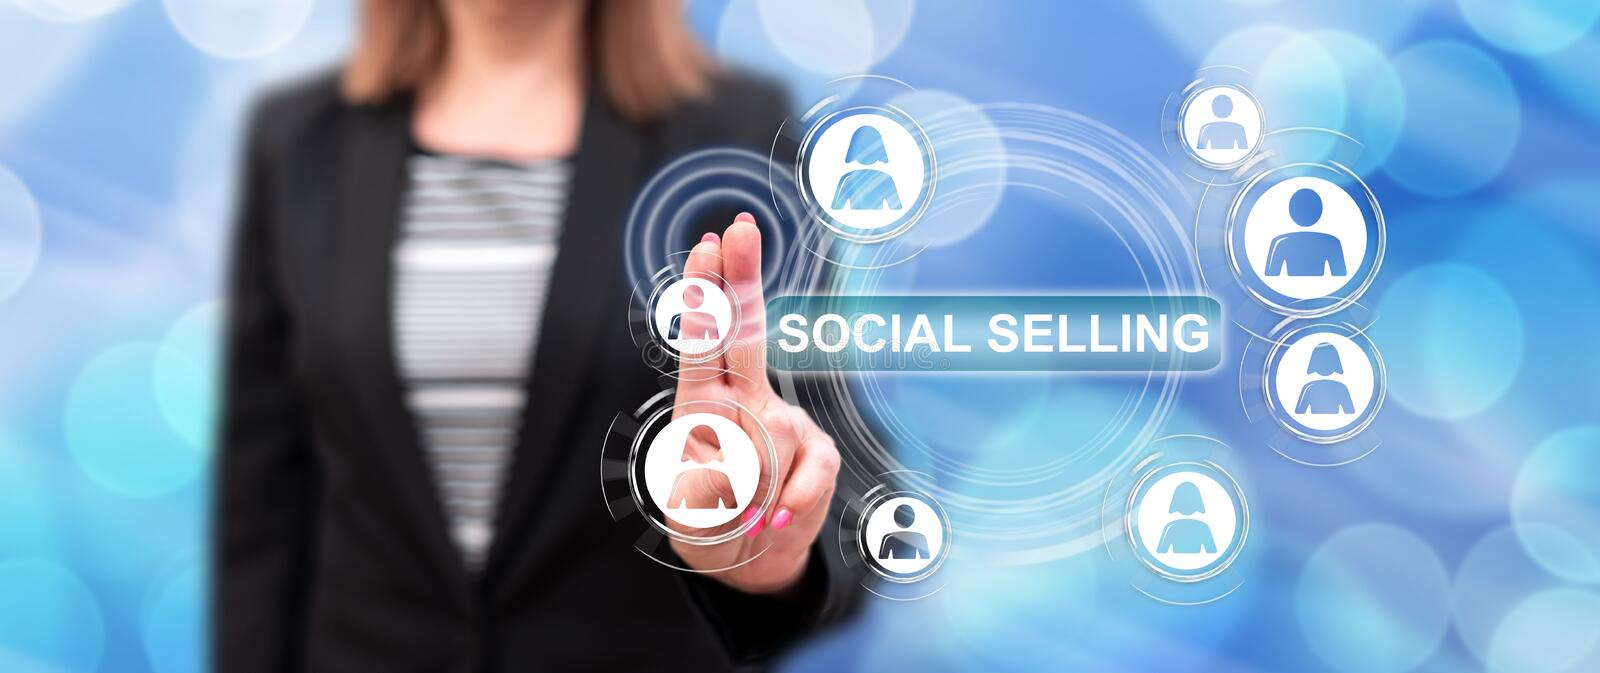 Woman touching a social selling concept stock image